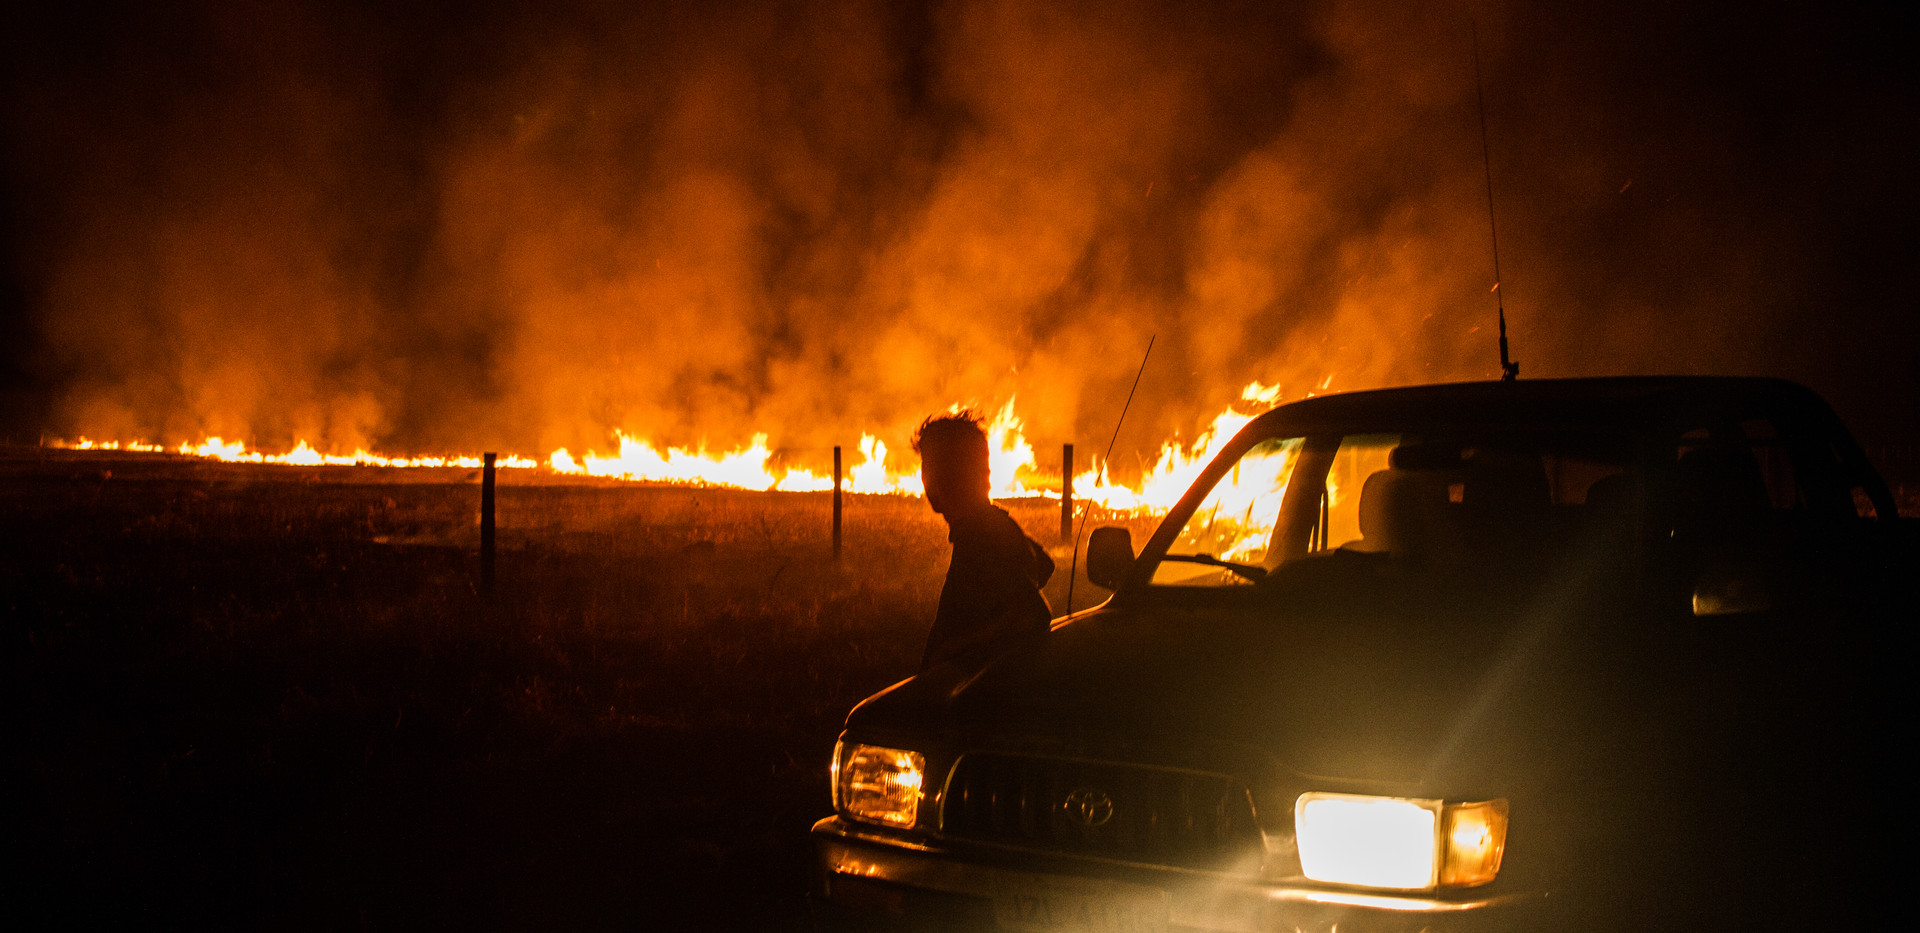 A farmer watches as a fire burns through a field in the District of Bom Jardim, State of Mato Grosso, Brazil. The Cerrado Region is one of the most affected in the Amazon. The hot and dry climate added to strong winds helped to spread the fires rapidly.